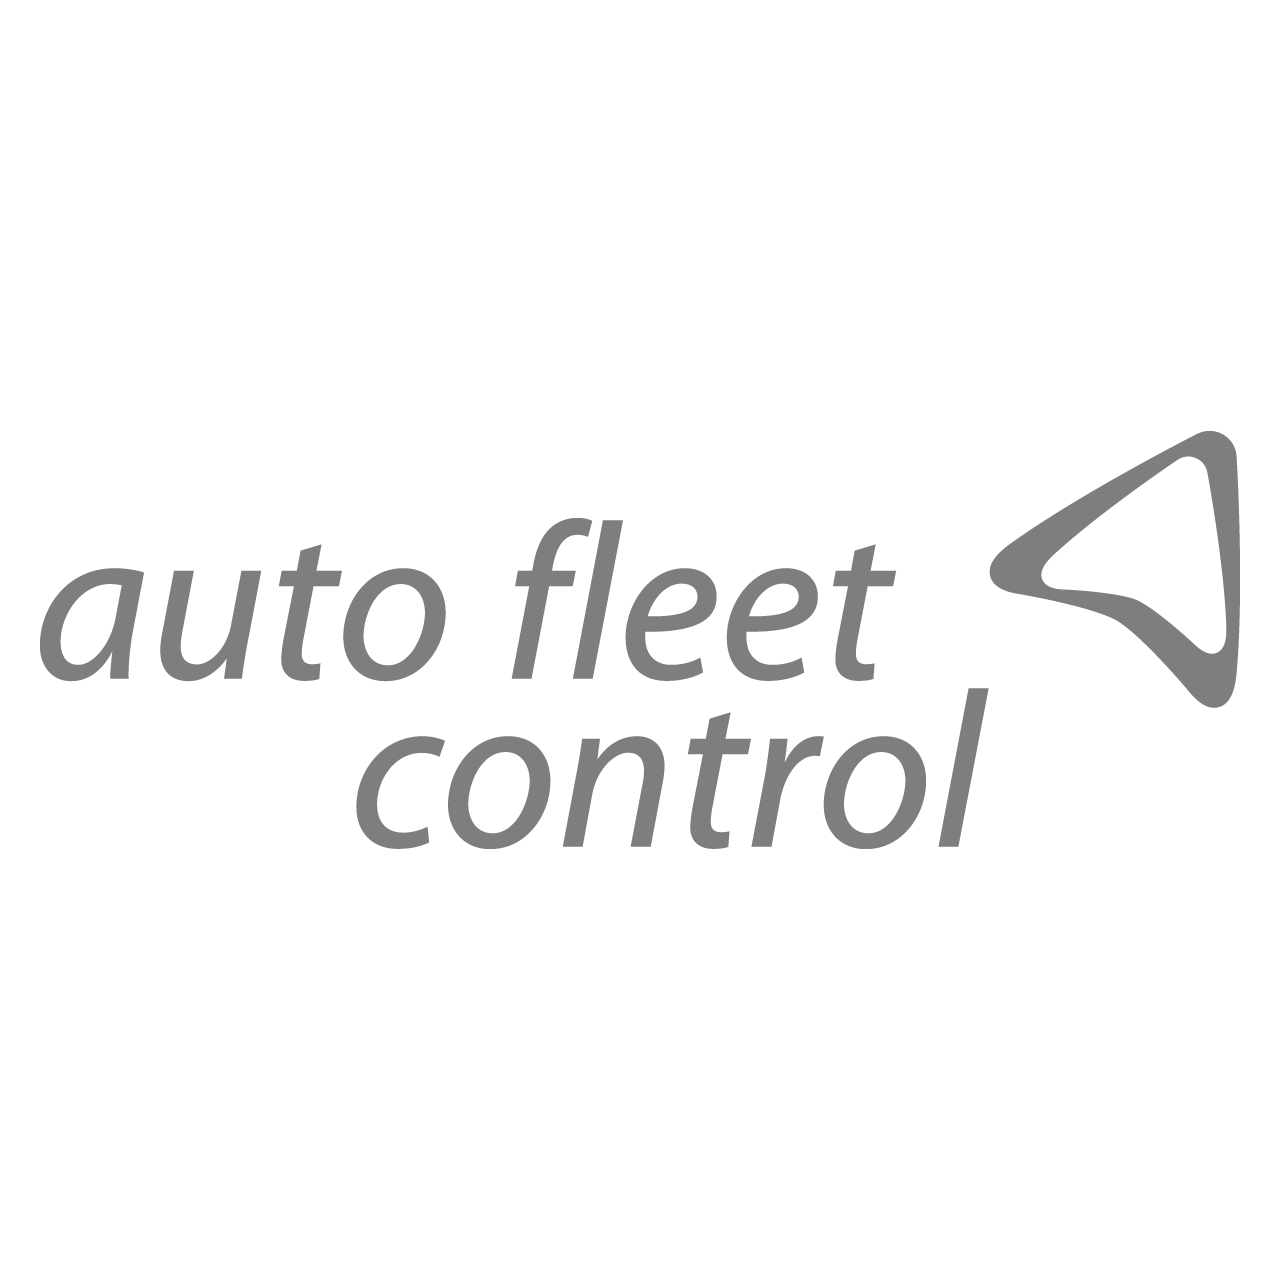 Logo Auto Fleet Control, black & white